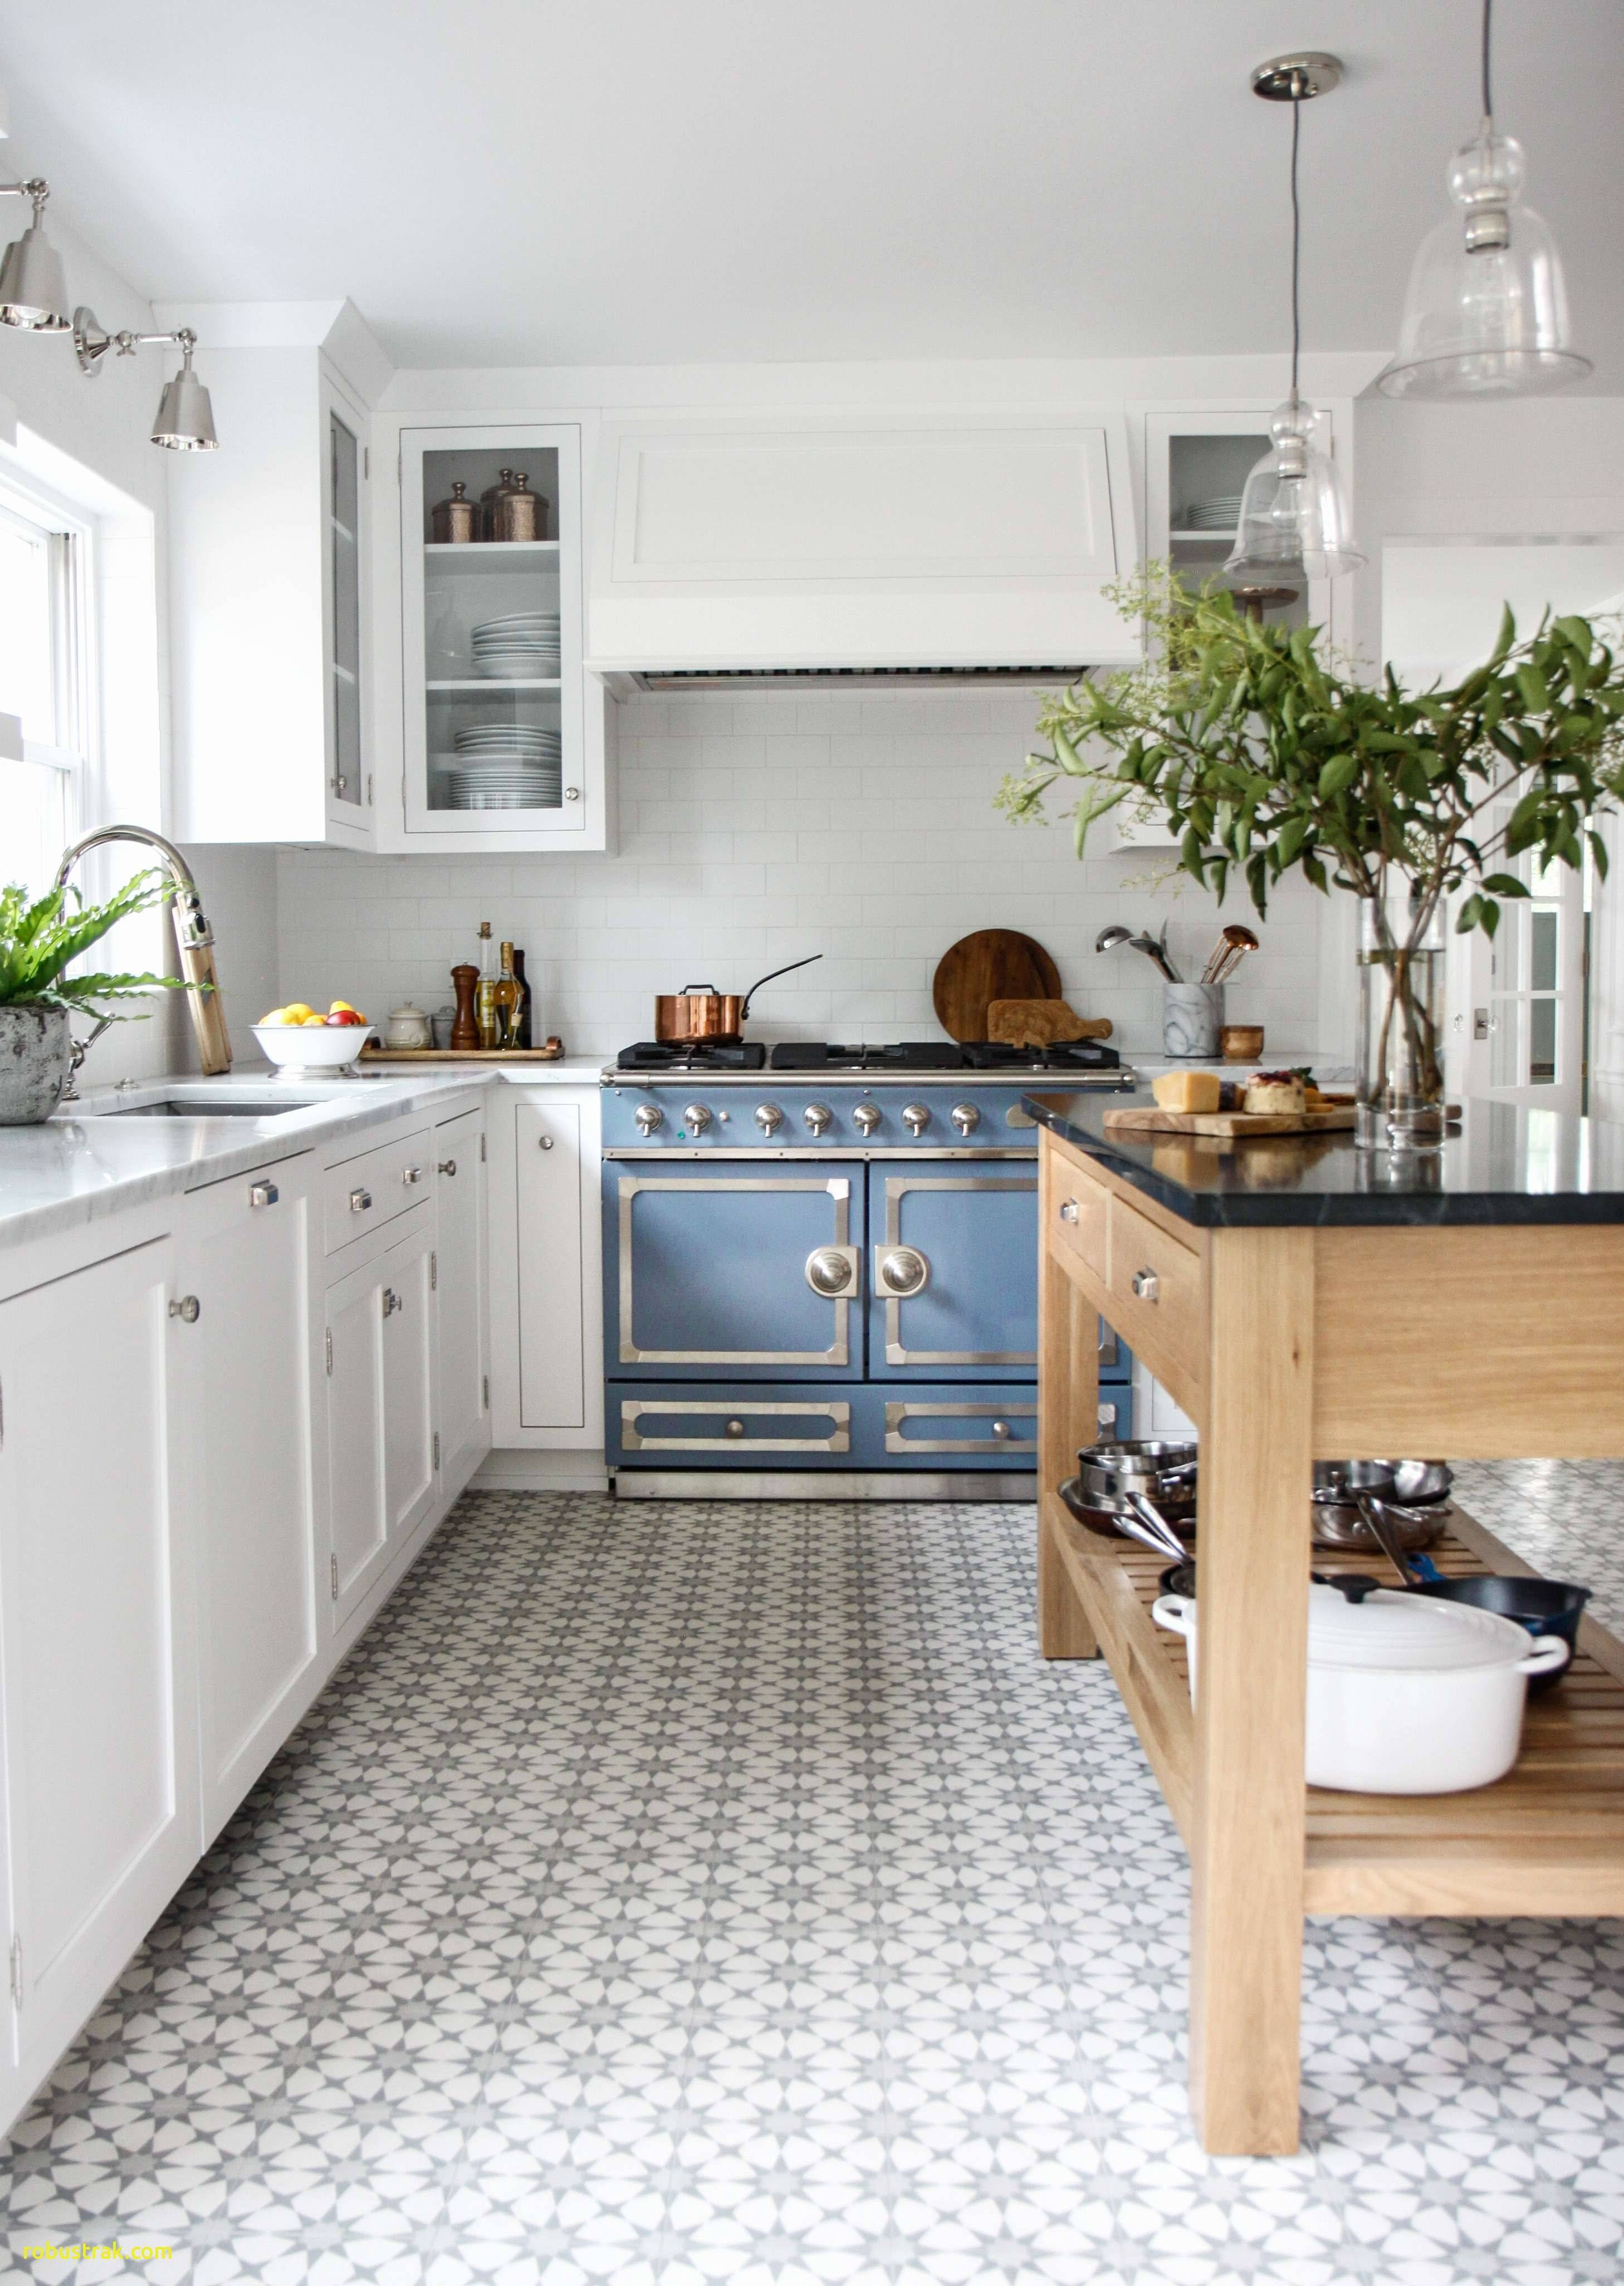 20 unique design for houzz kitchen cabinets with glass doors of houzz kitchen backsplash tile